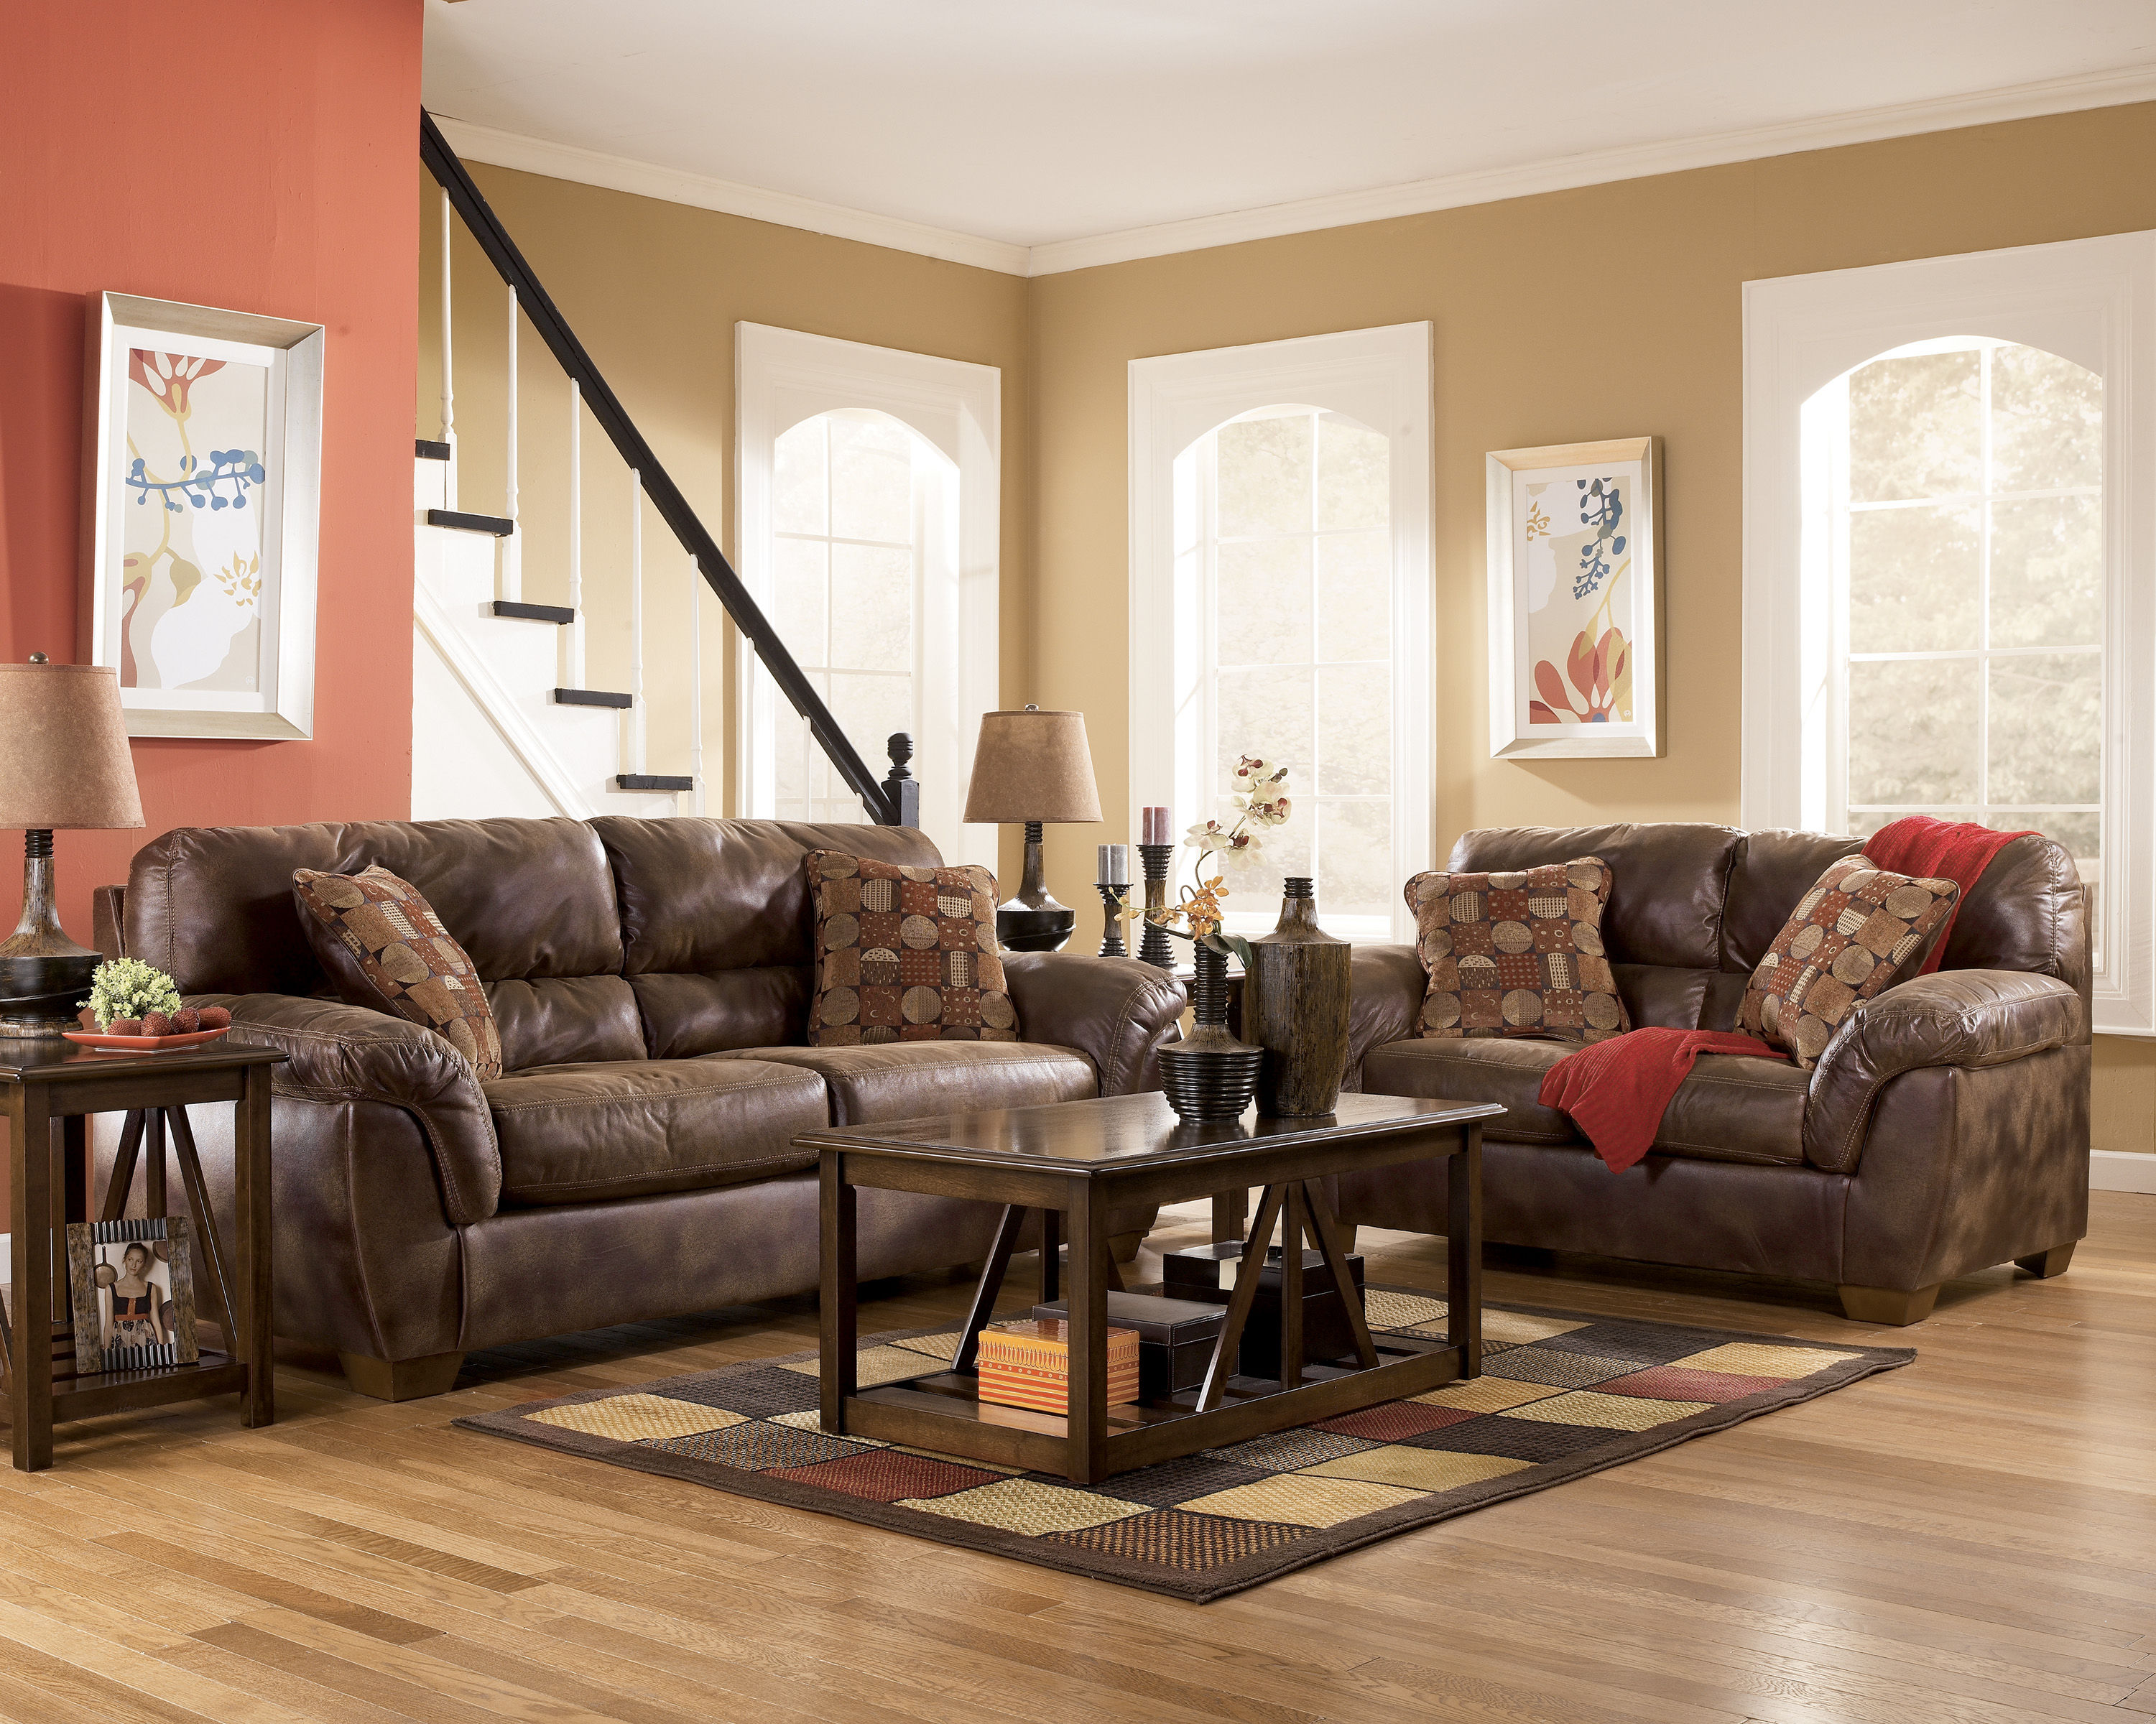 Frontier Traditional Canyon Faux Leather Wood Living Room Set The Classy Home The Classy